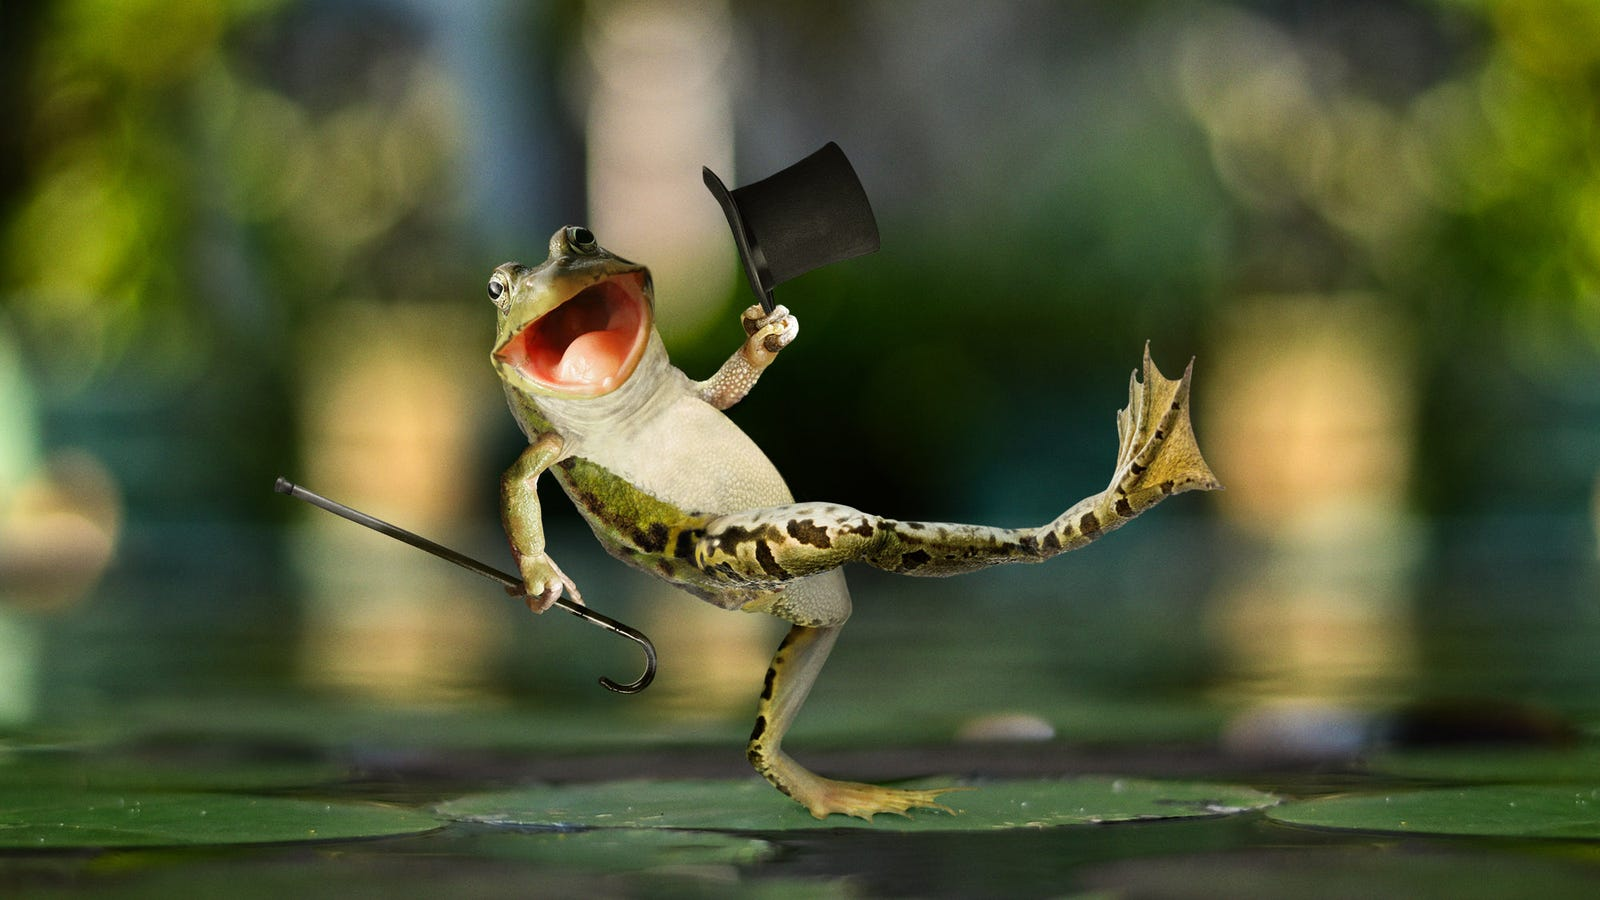 Herpetologists Discover Species Of Frogs That Evolved To Spontaneously Grow Top Hat And Cane